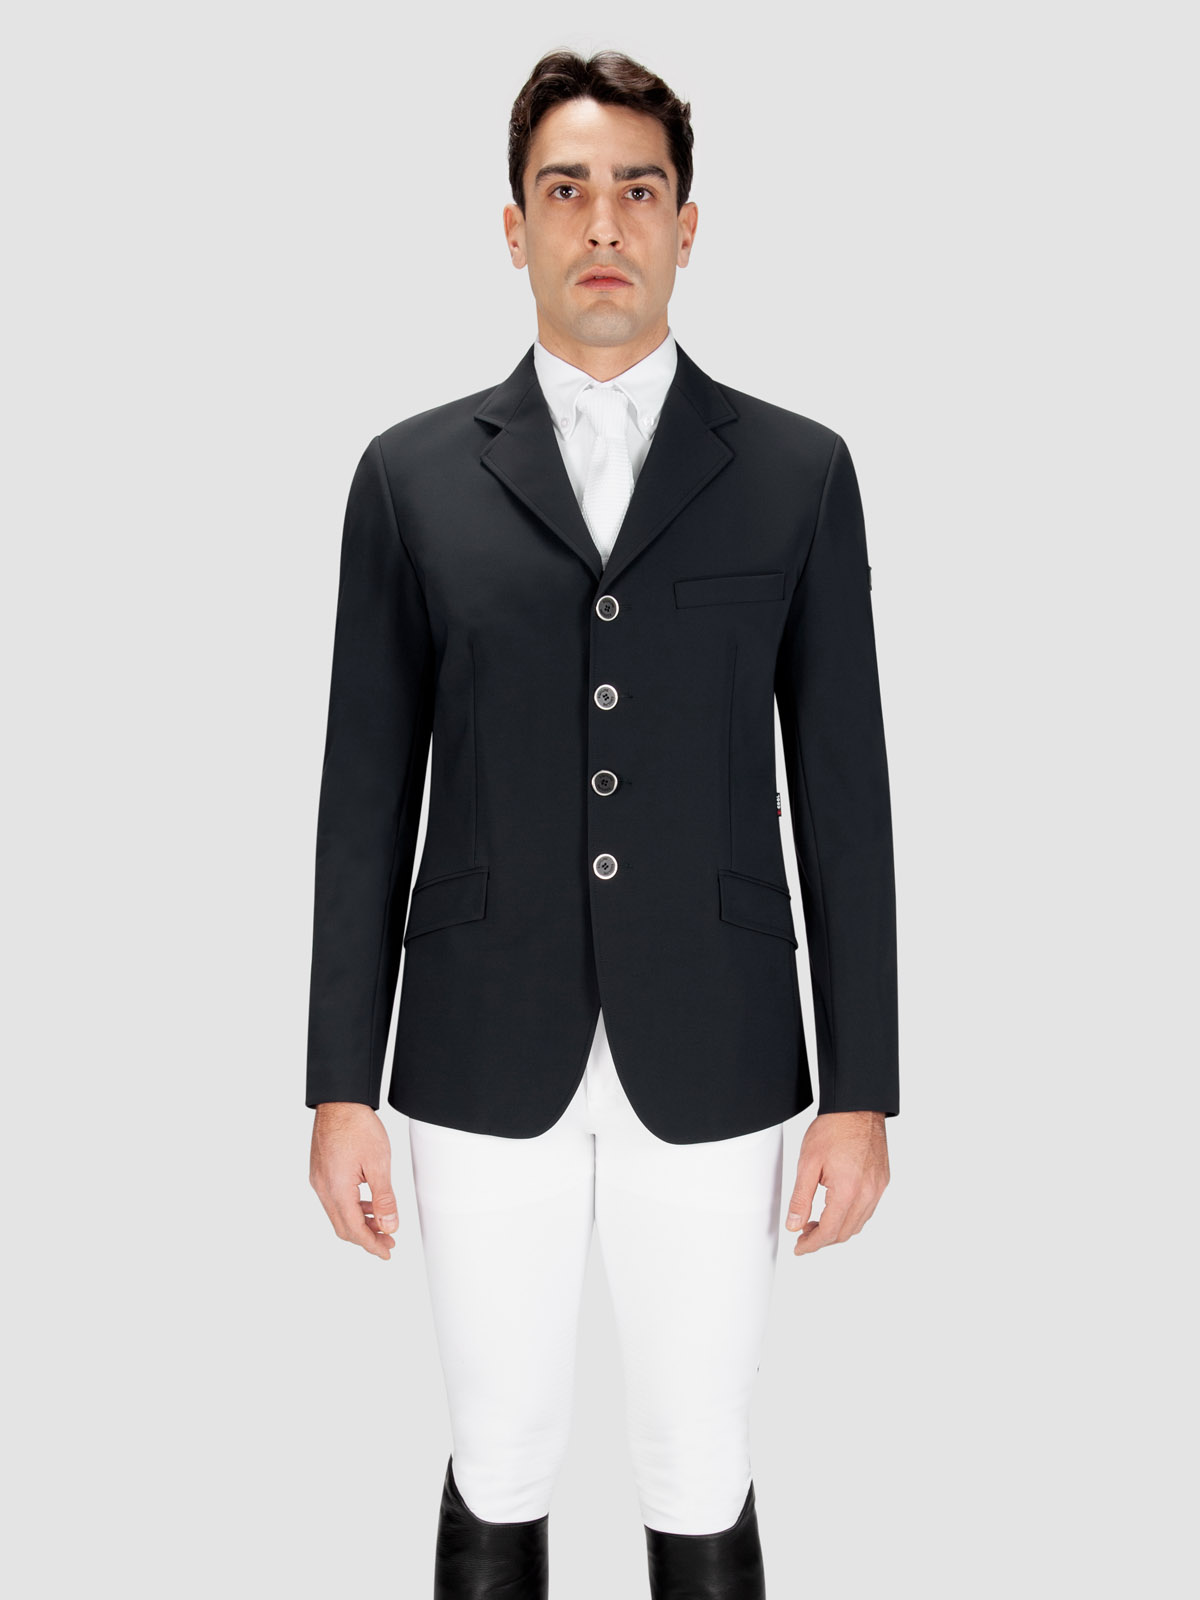 RACK - Men's Show Coat X-Cool Evo 1